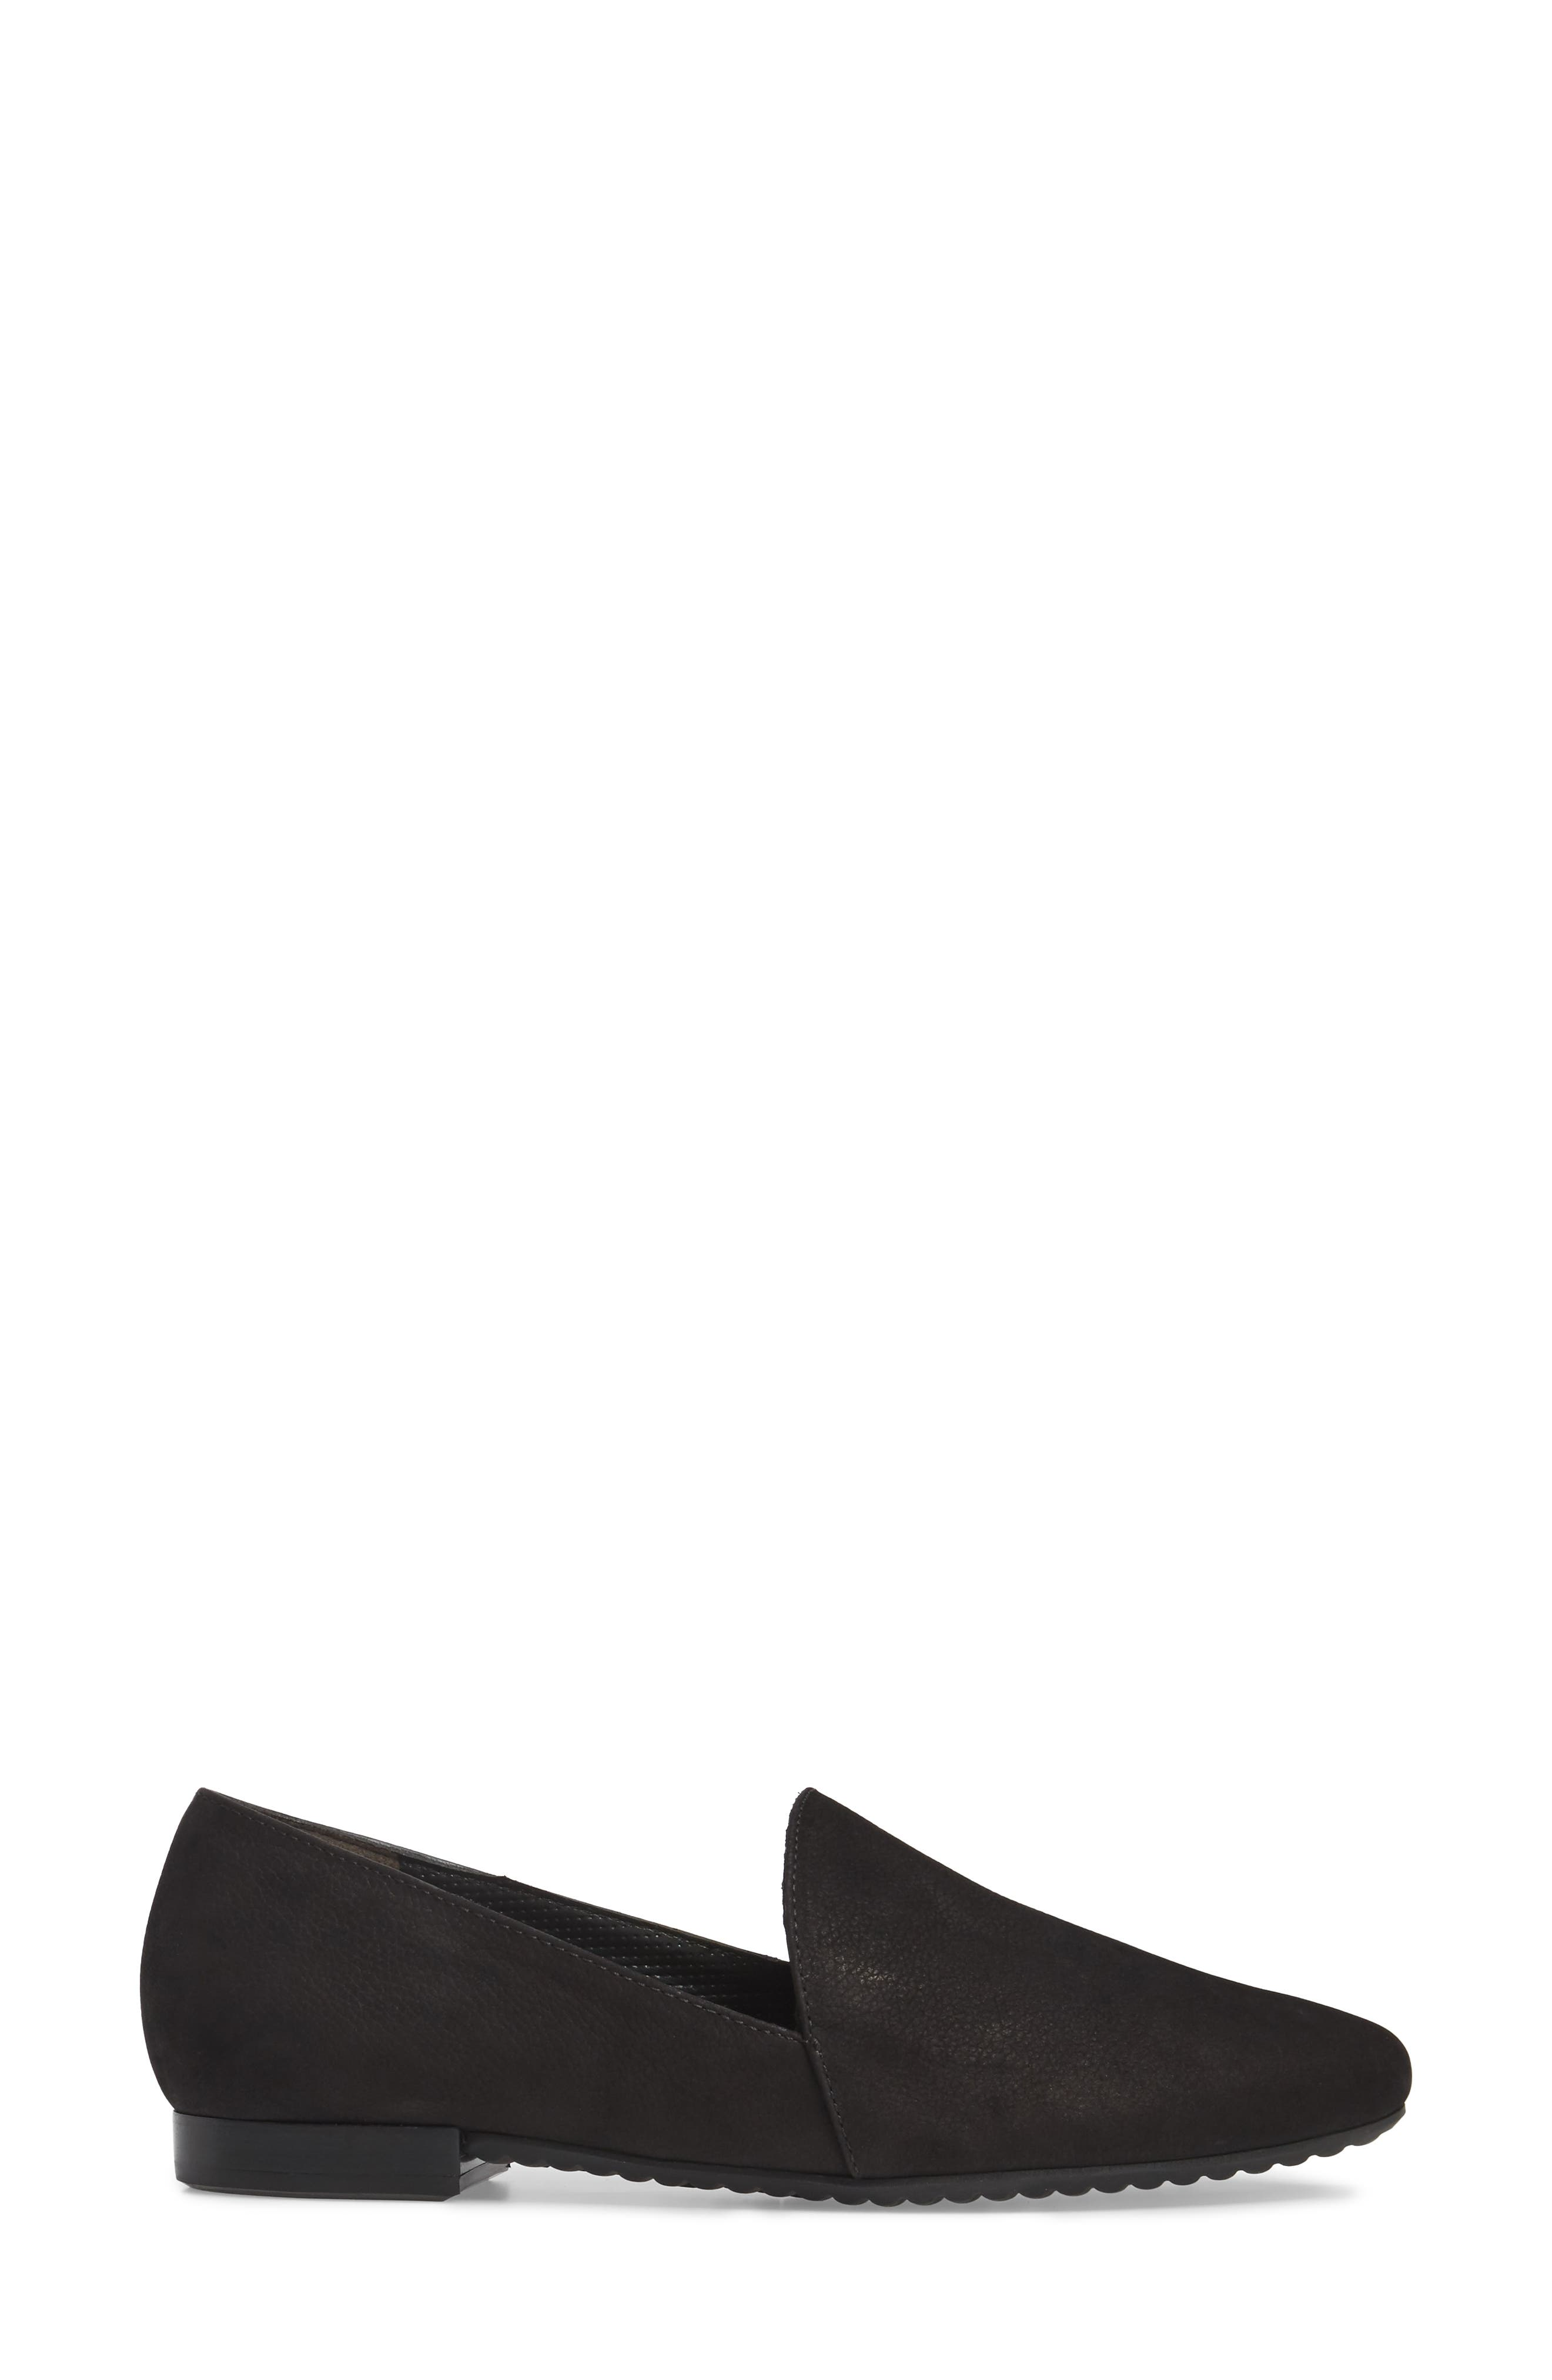 Naomi Loafer,                             Alternate thumbnail 7, color,